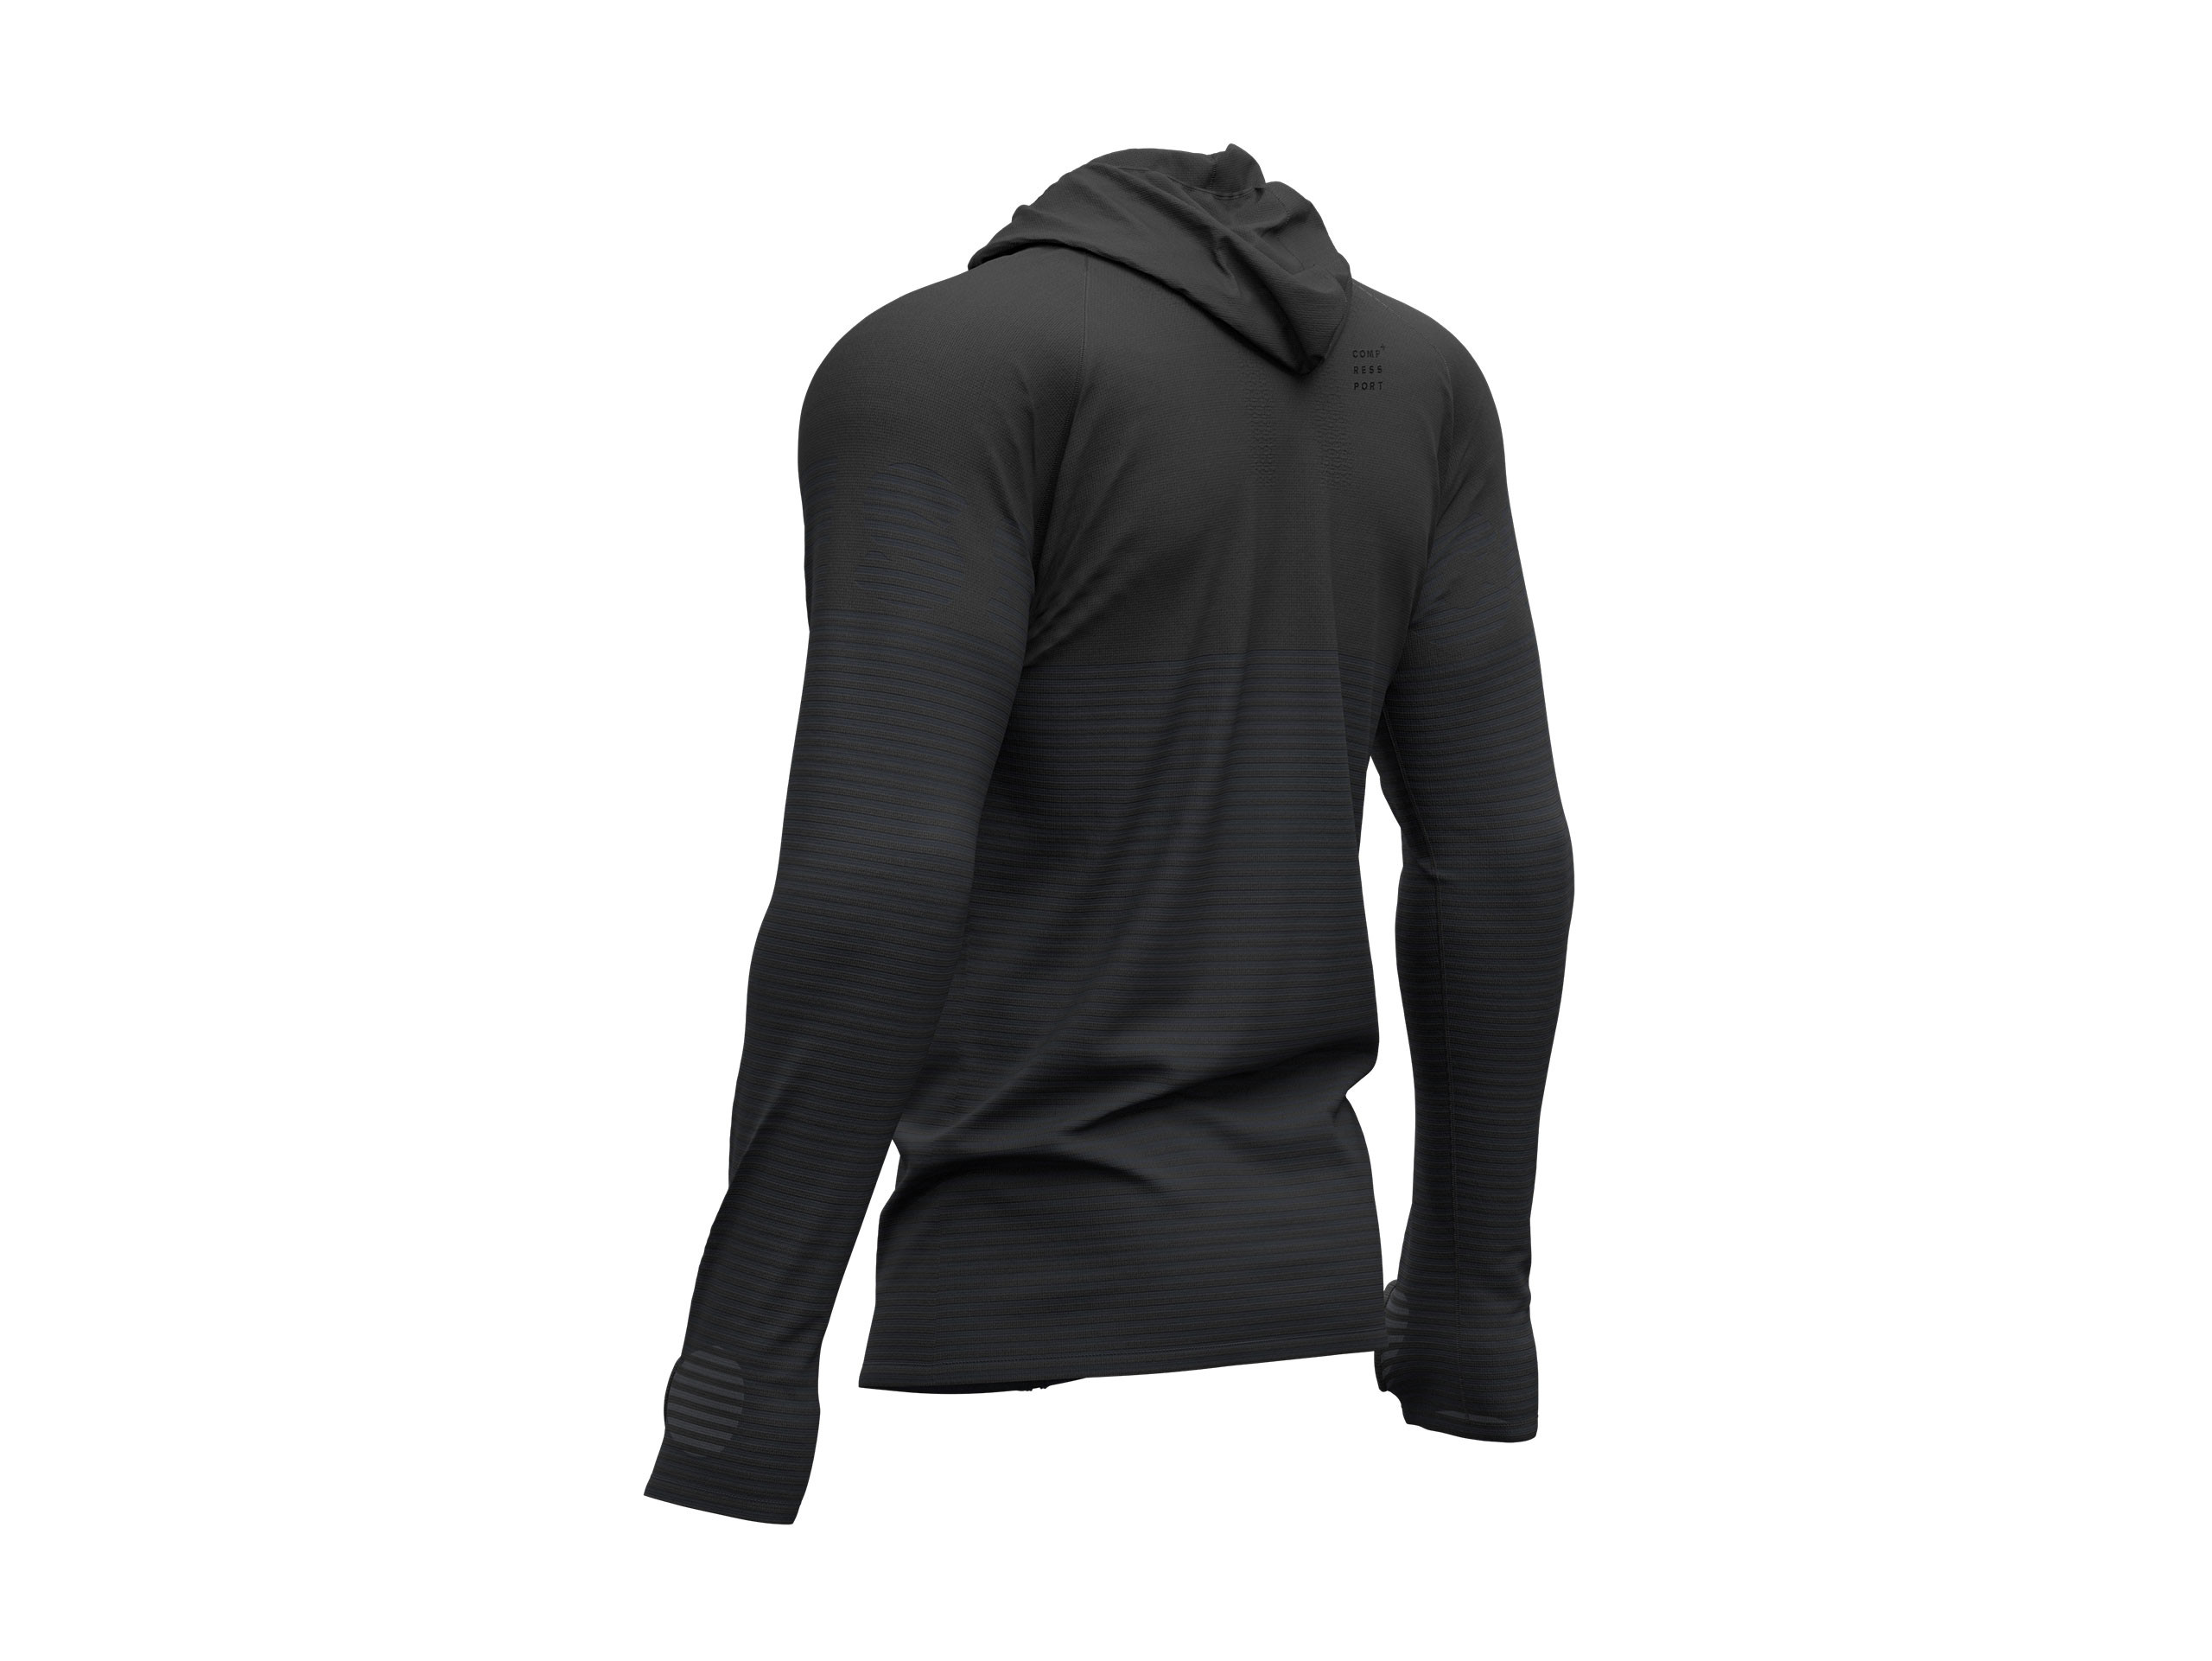 3D Thermo Seamless Zip Hoodie - Black Edition 2019